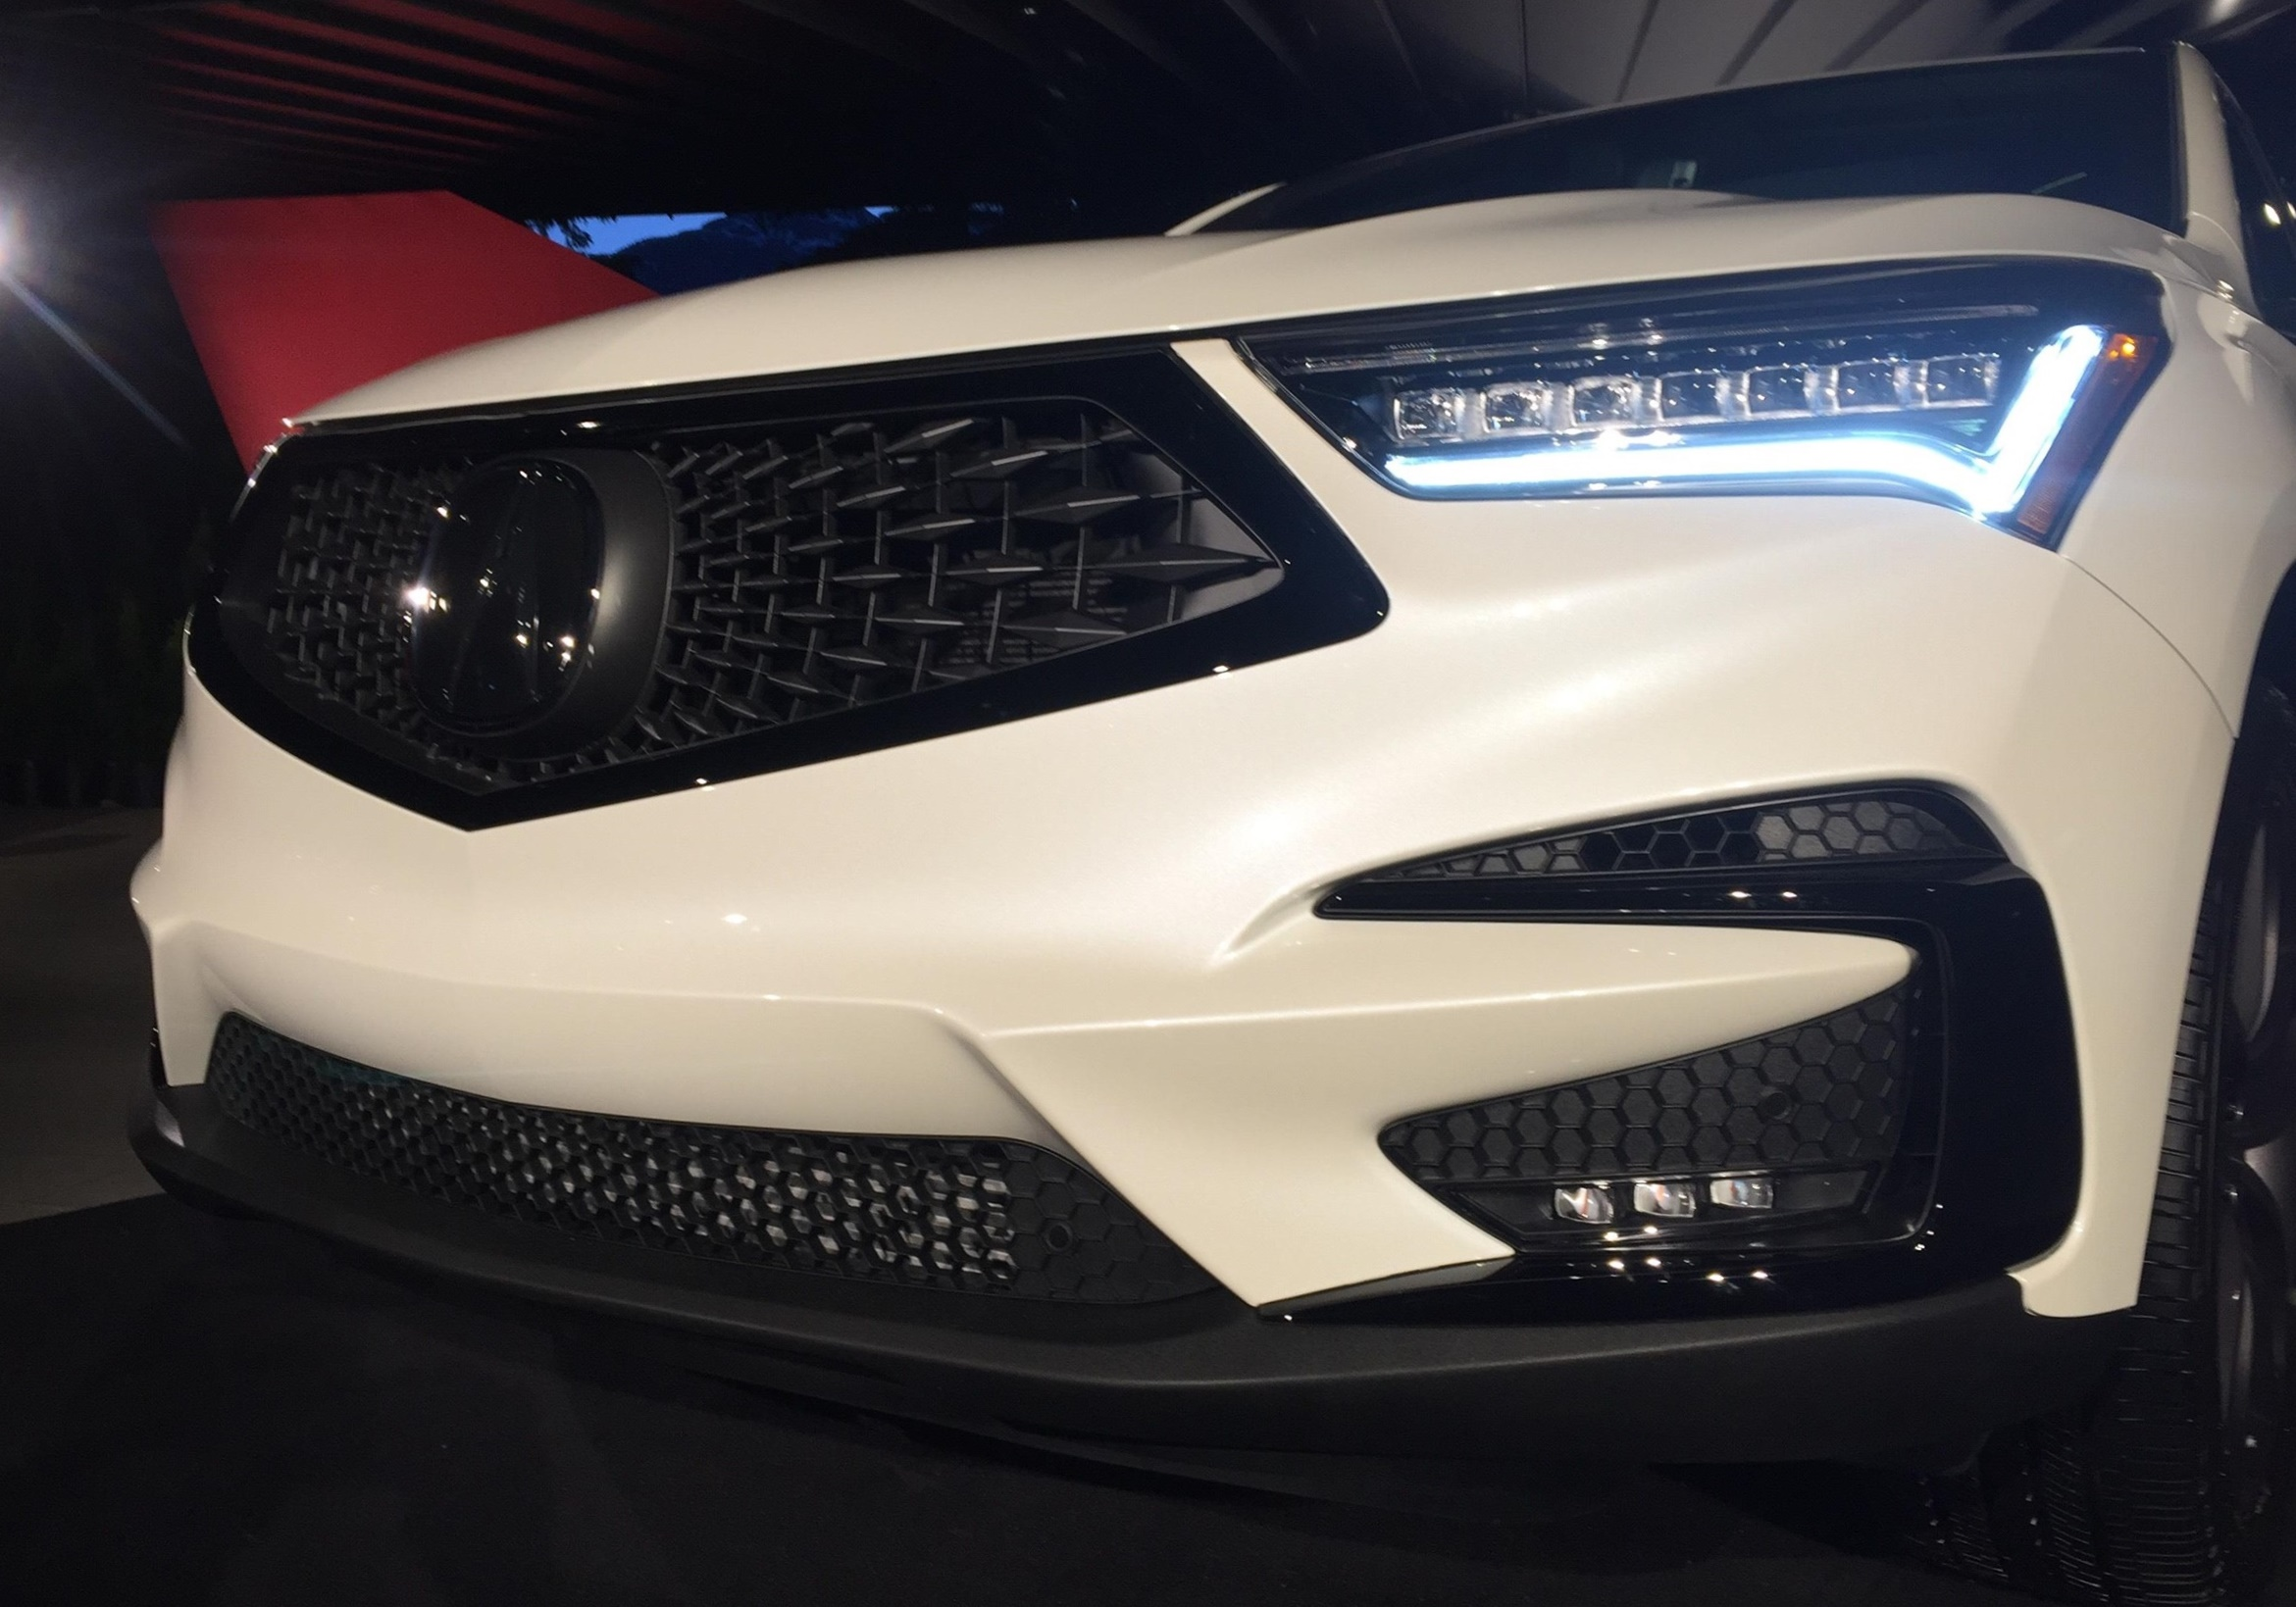 Acura Rdx Accessories >> 2019 Acura RDX A-Spec - First Drive Review - By Josh Seaman » CAR SHOPPING